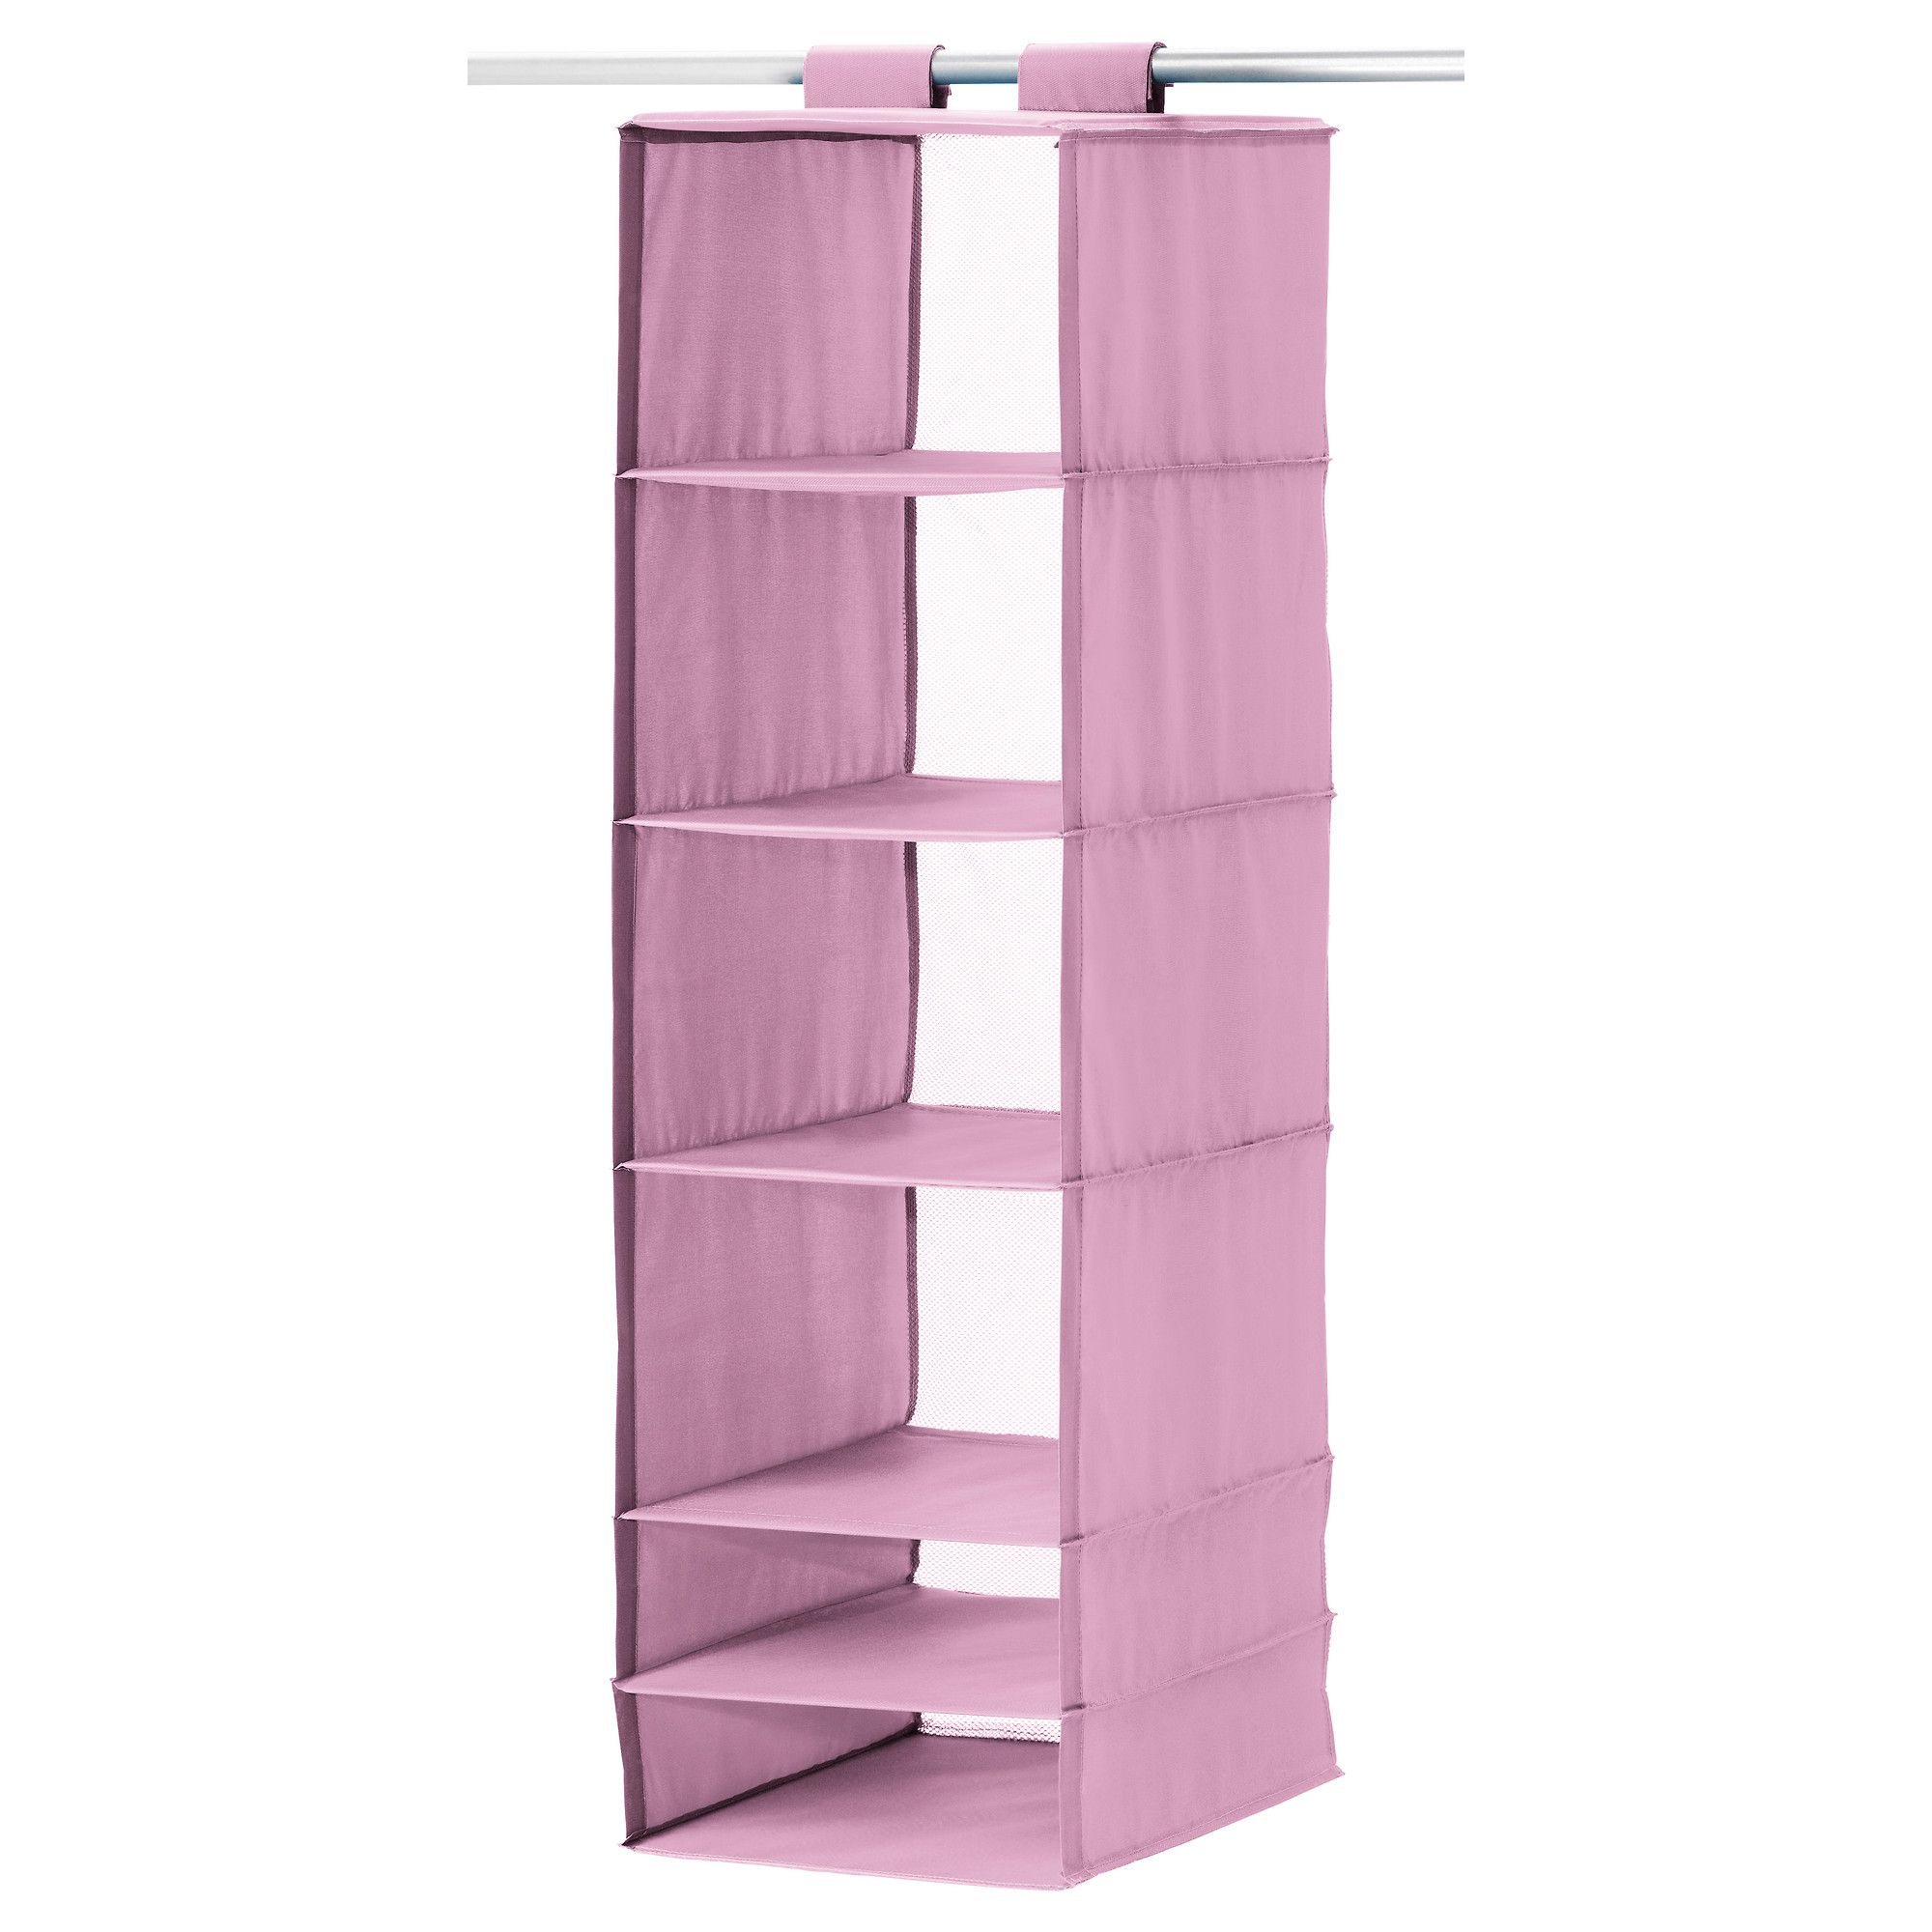 Skubb Organizer With 6 Compartments Pink Ikea